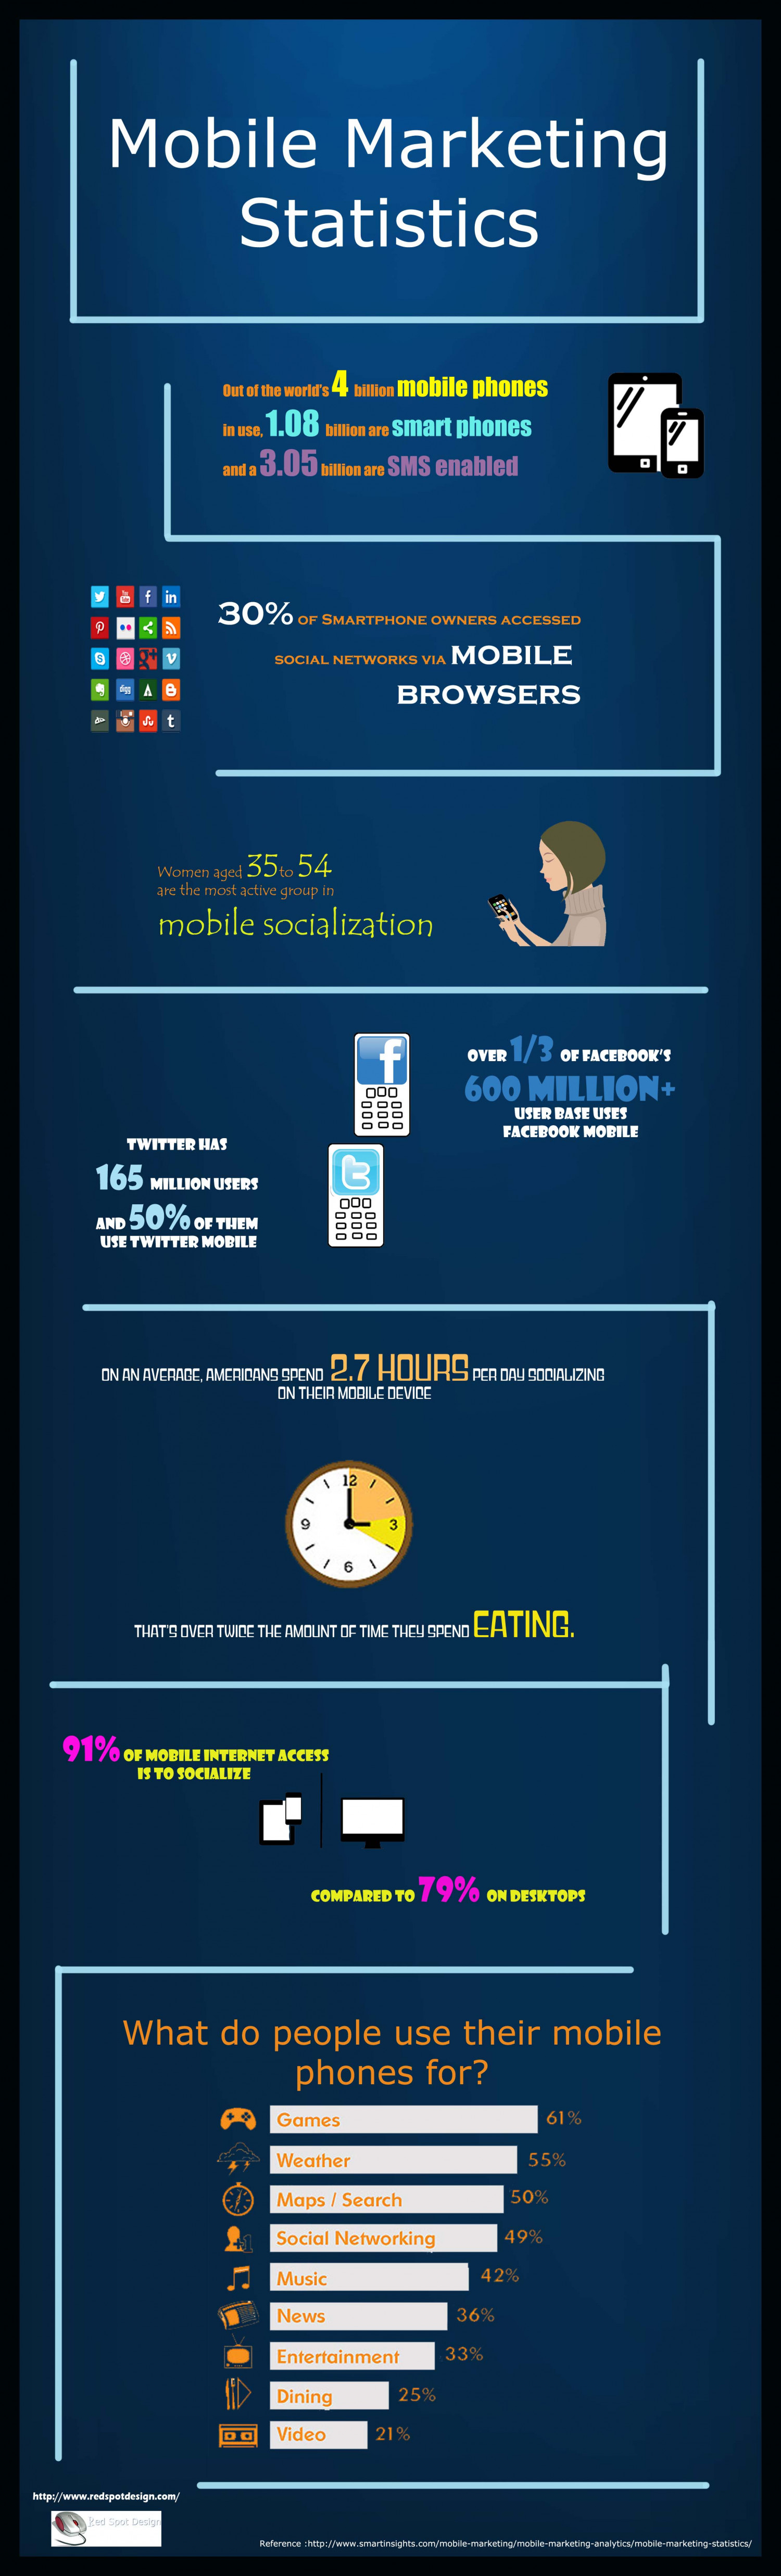 Mobile Marketing Statistics Infographic